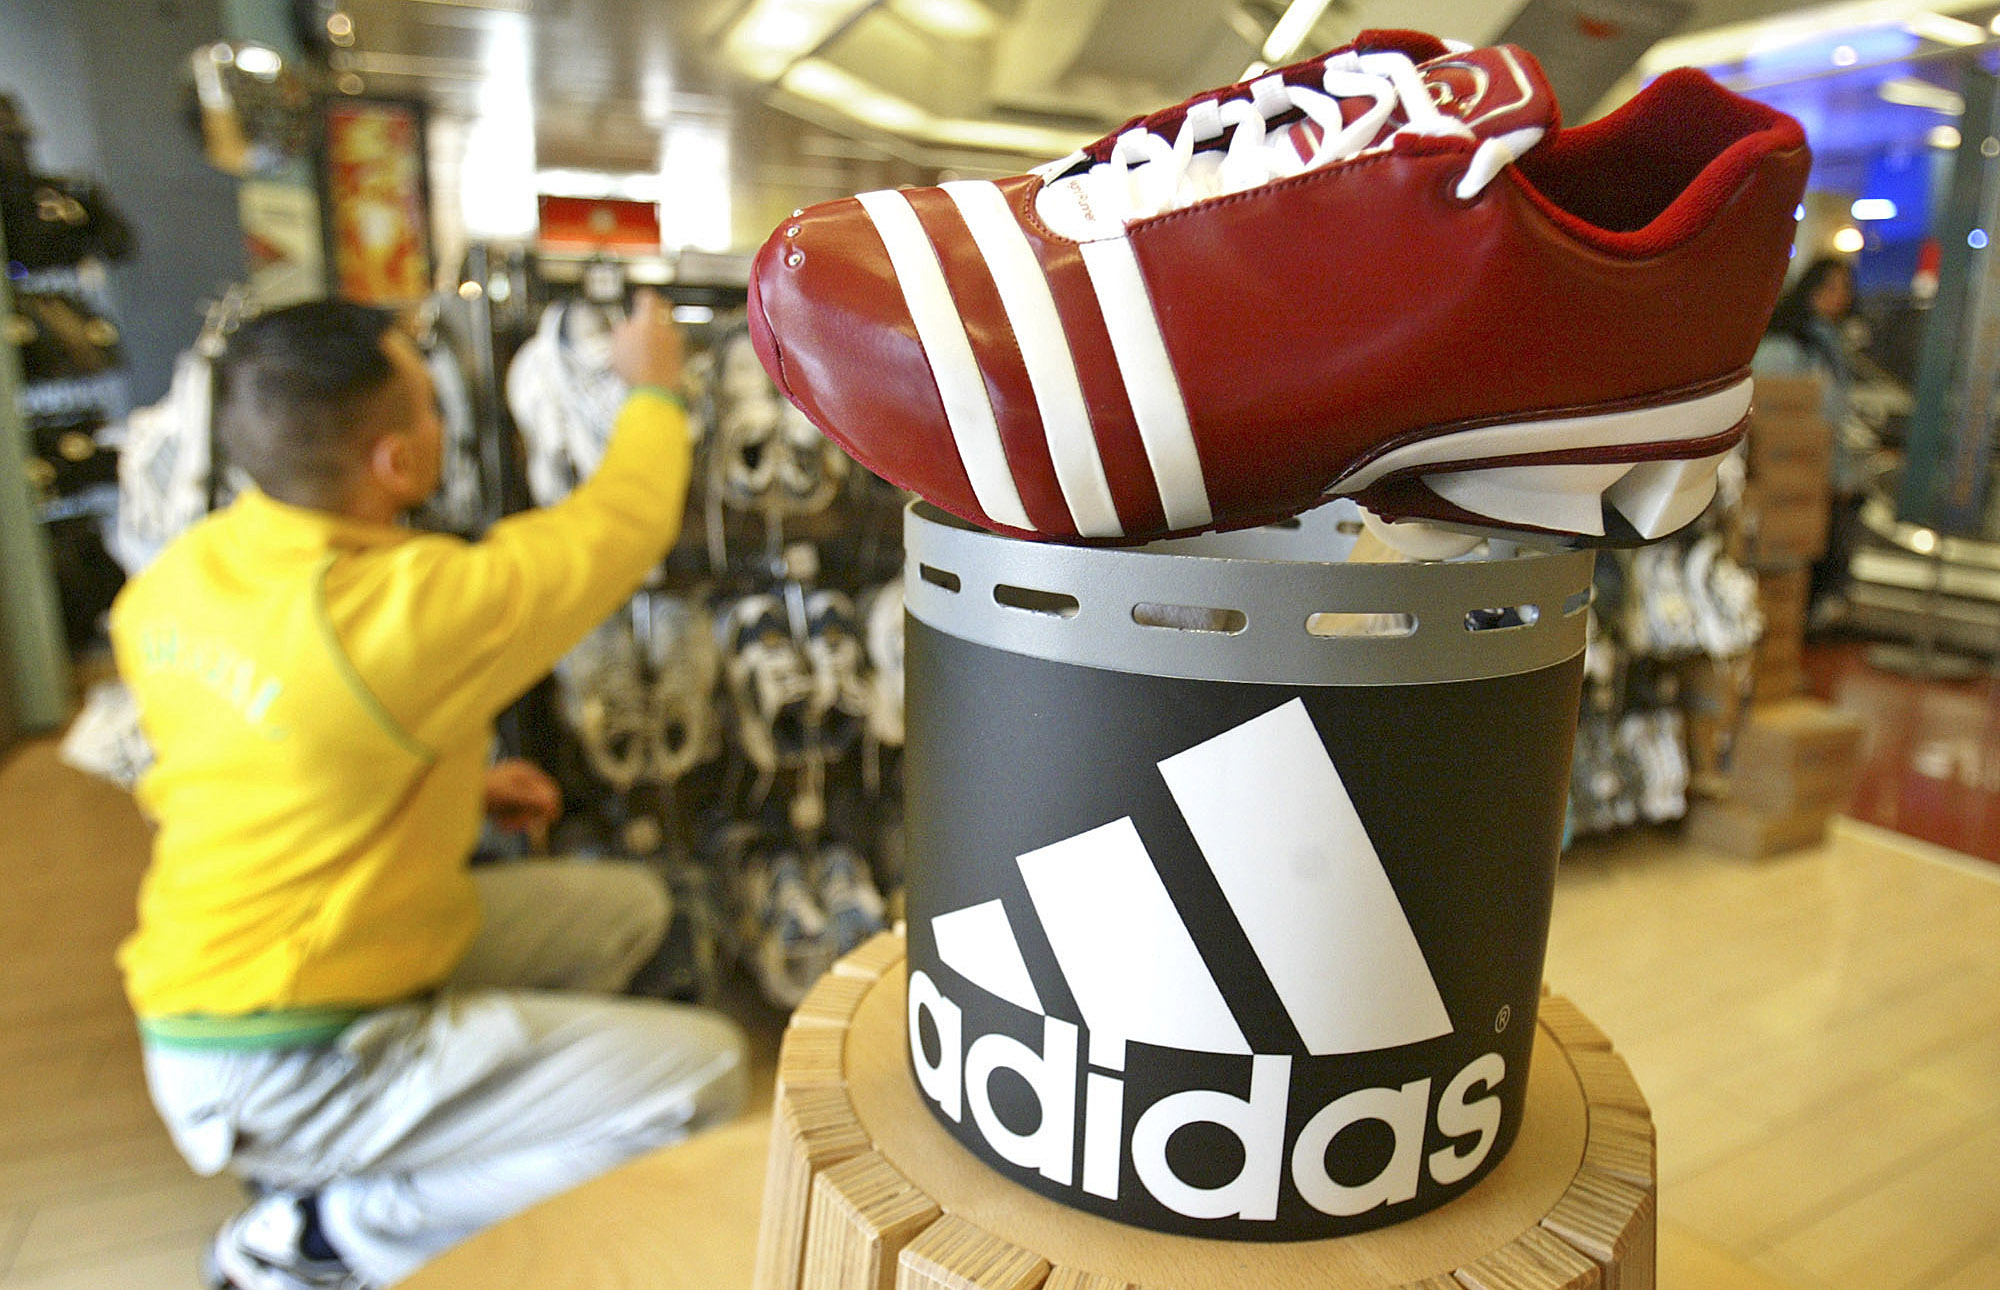 An employee arranges Adidas sports shoes on display in a sporting goods store.